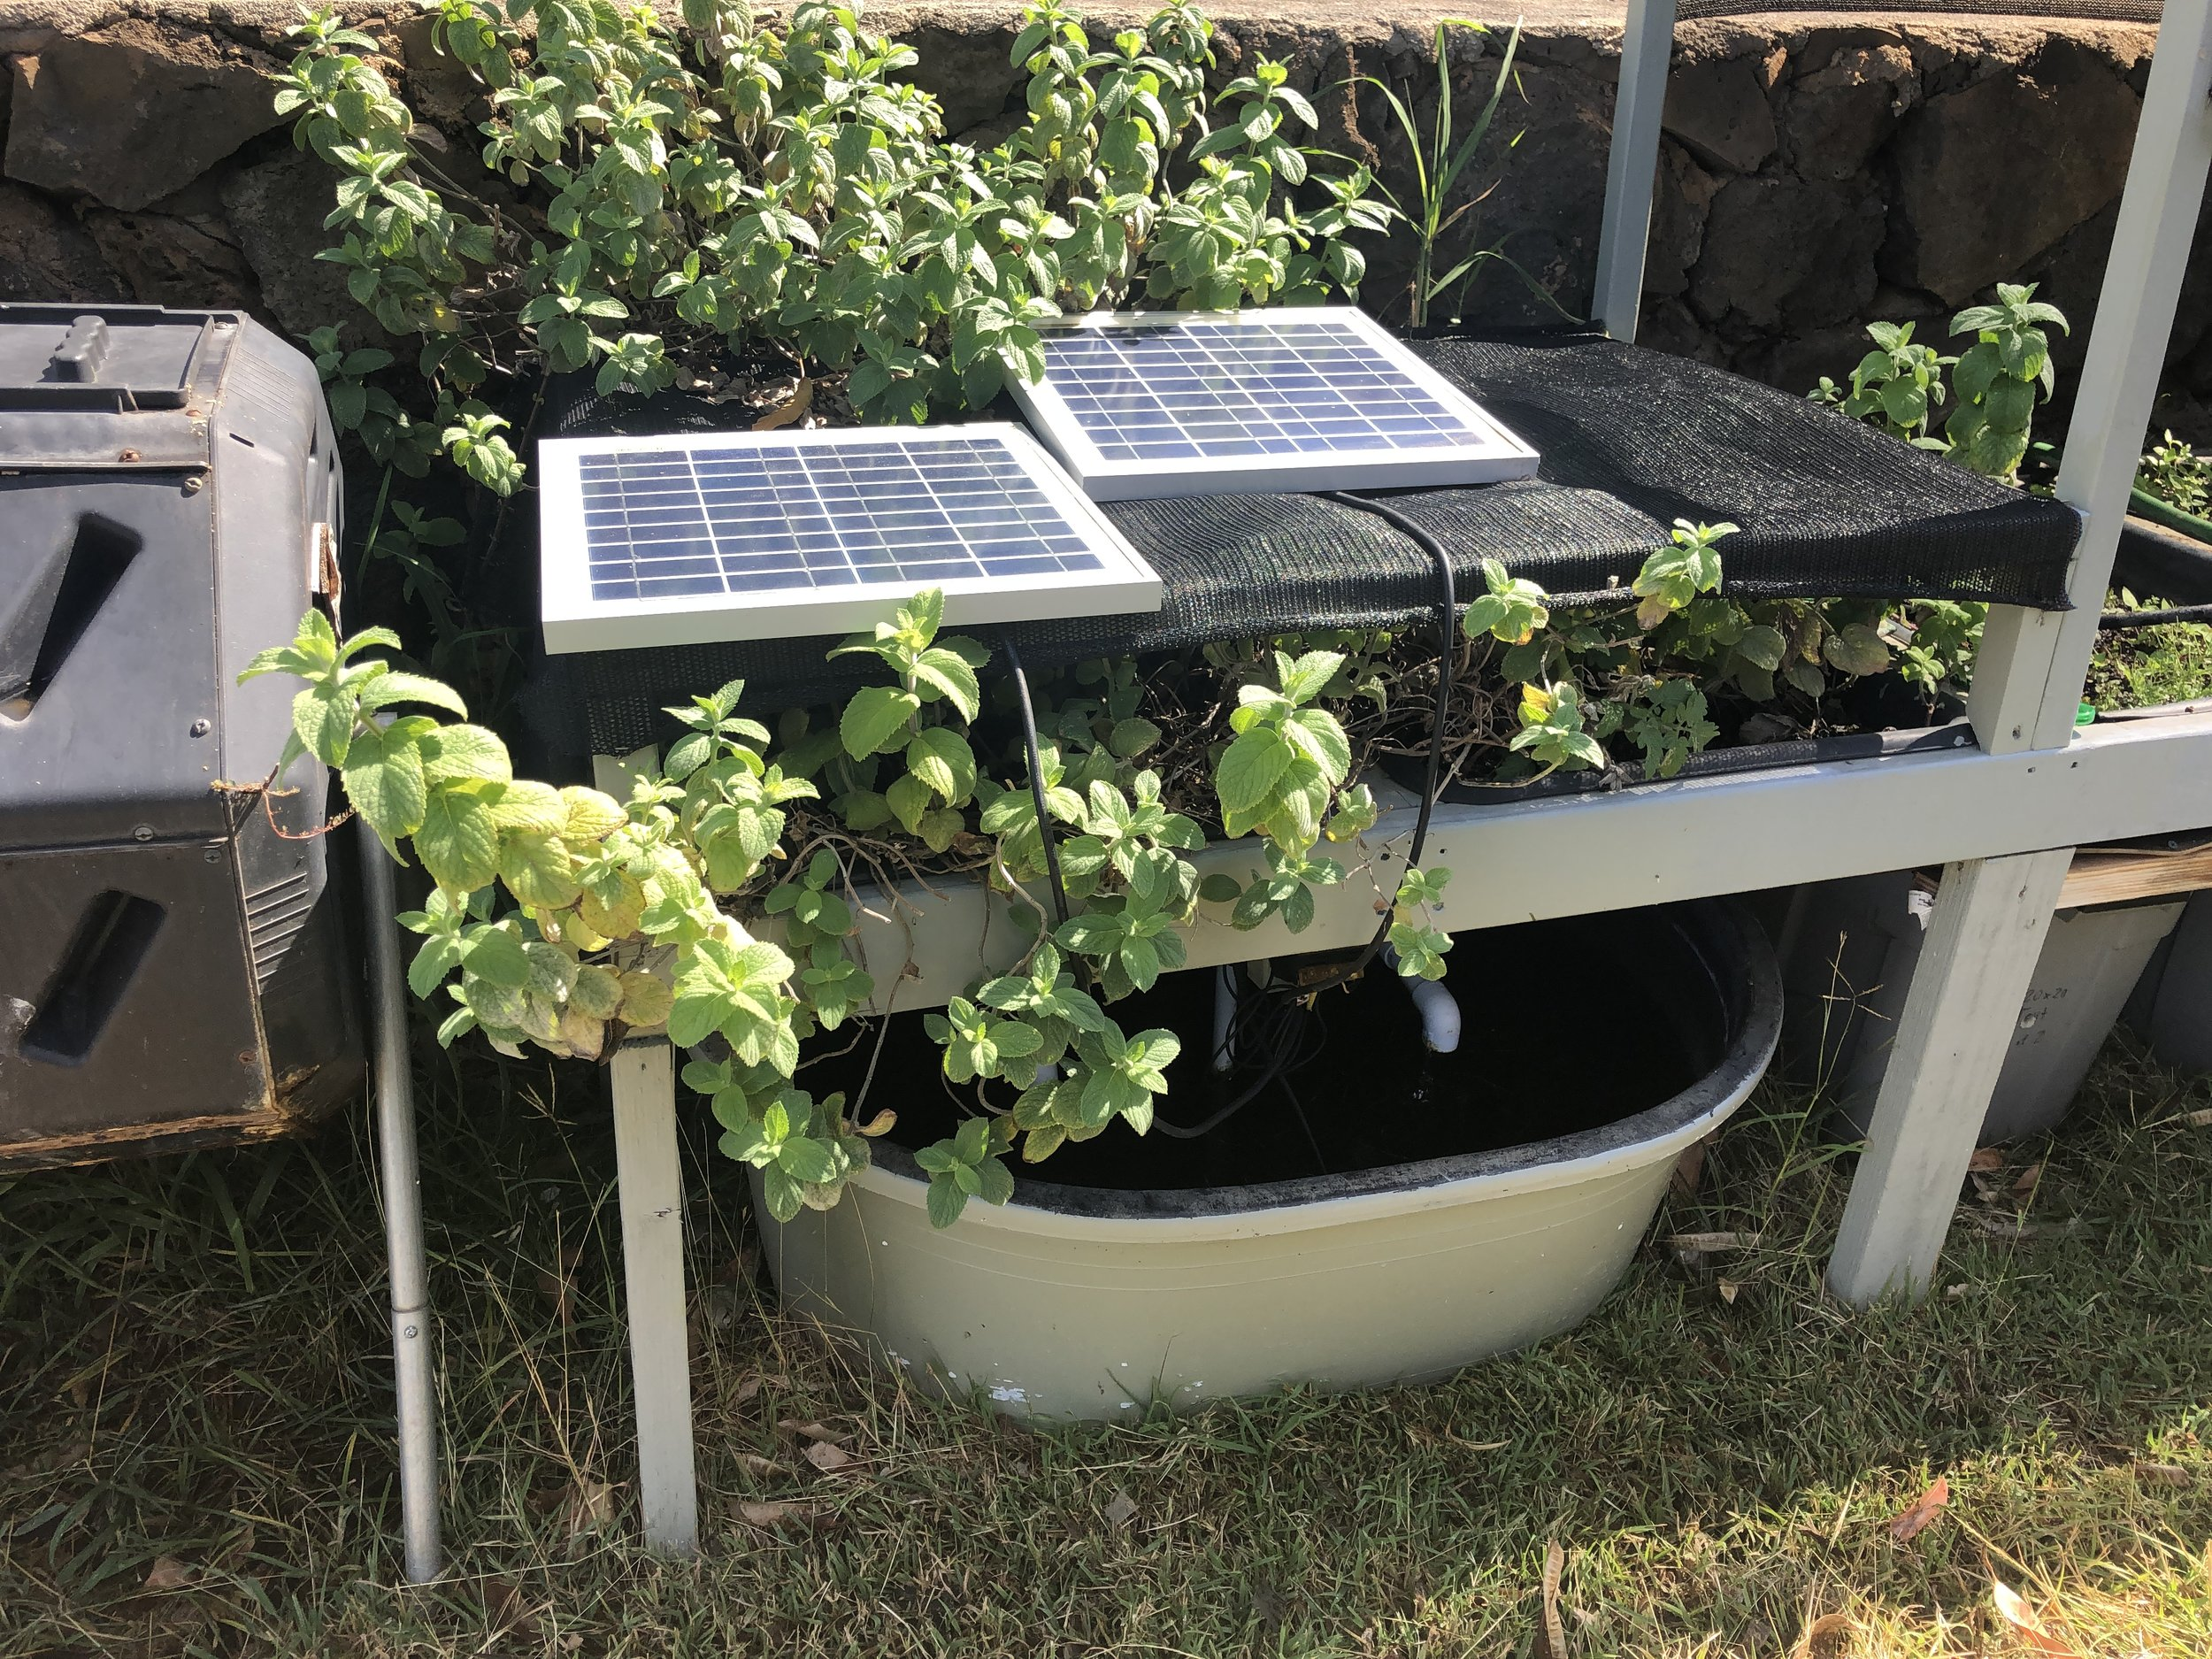 Aquaponics System (DIY) - How to make a solar powered Aquaponics system.